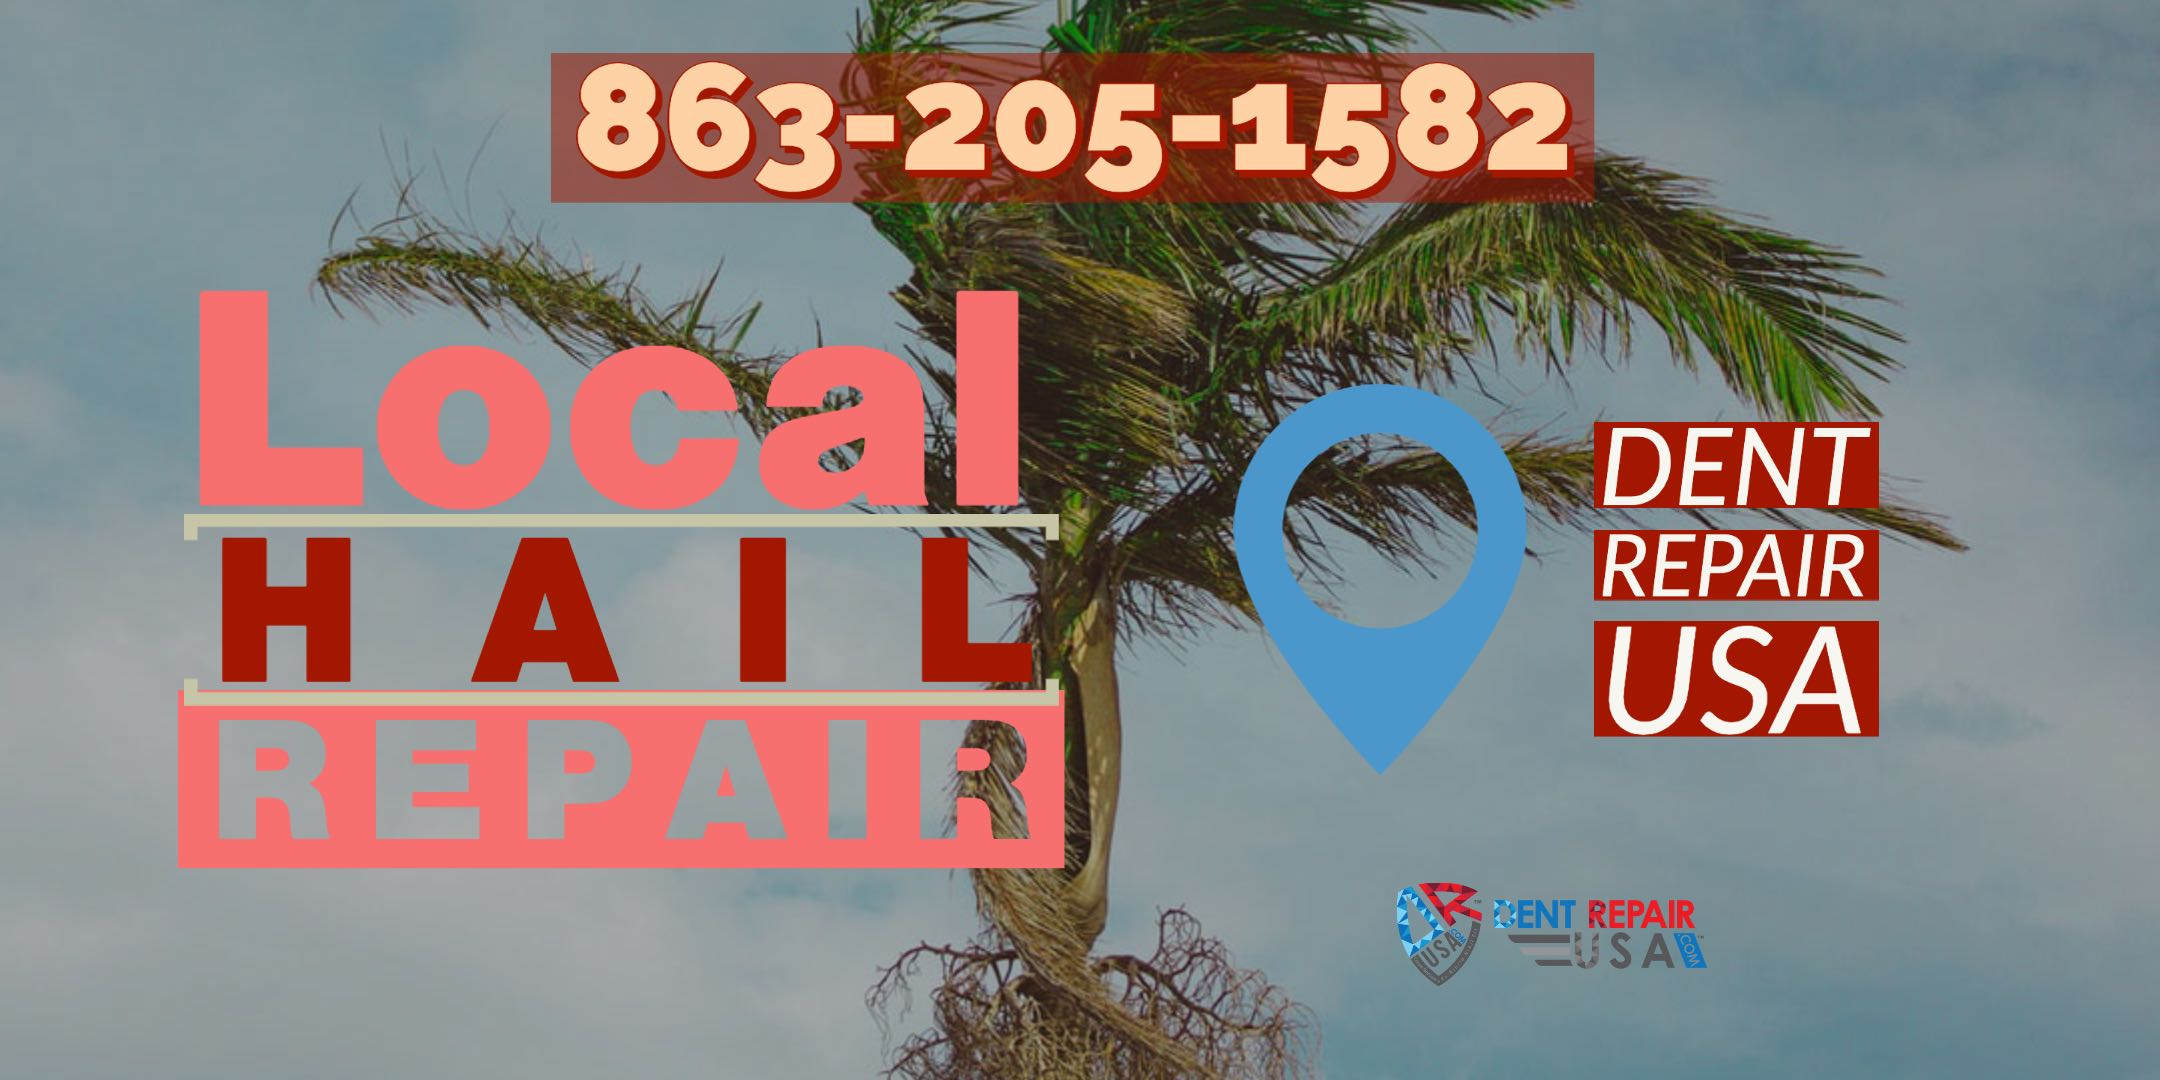 Shop Local In Lakeland Florida For Hail Damage